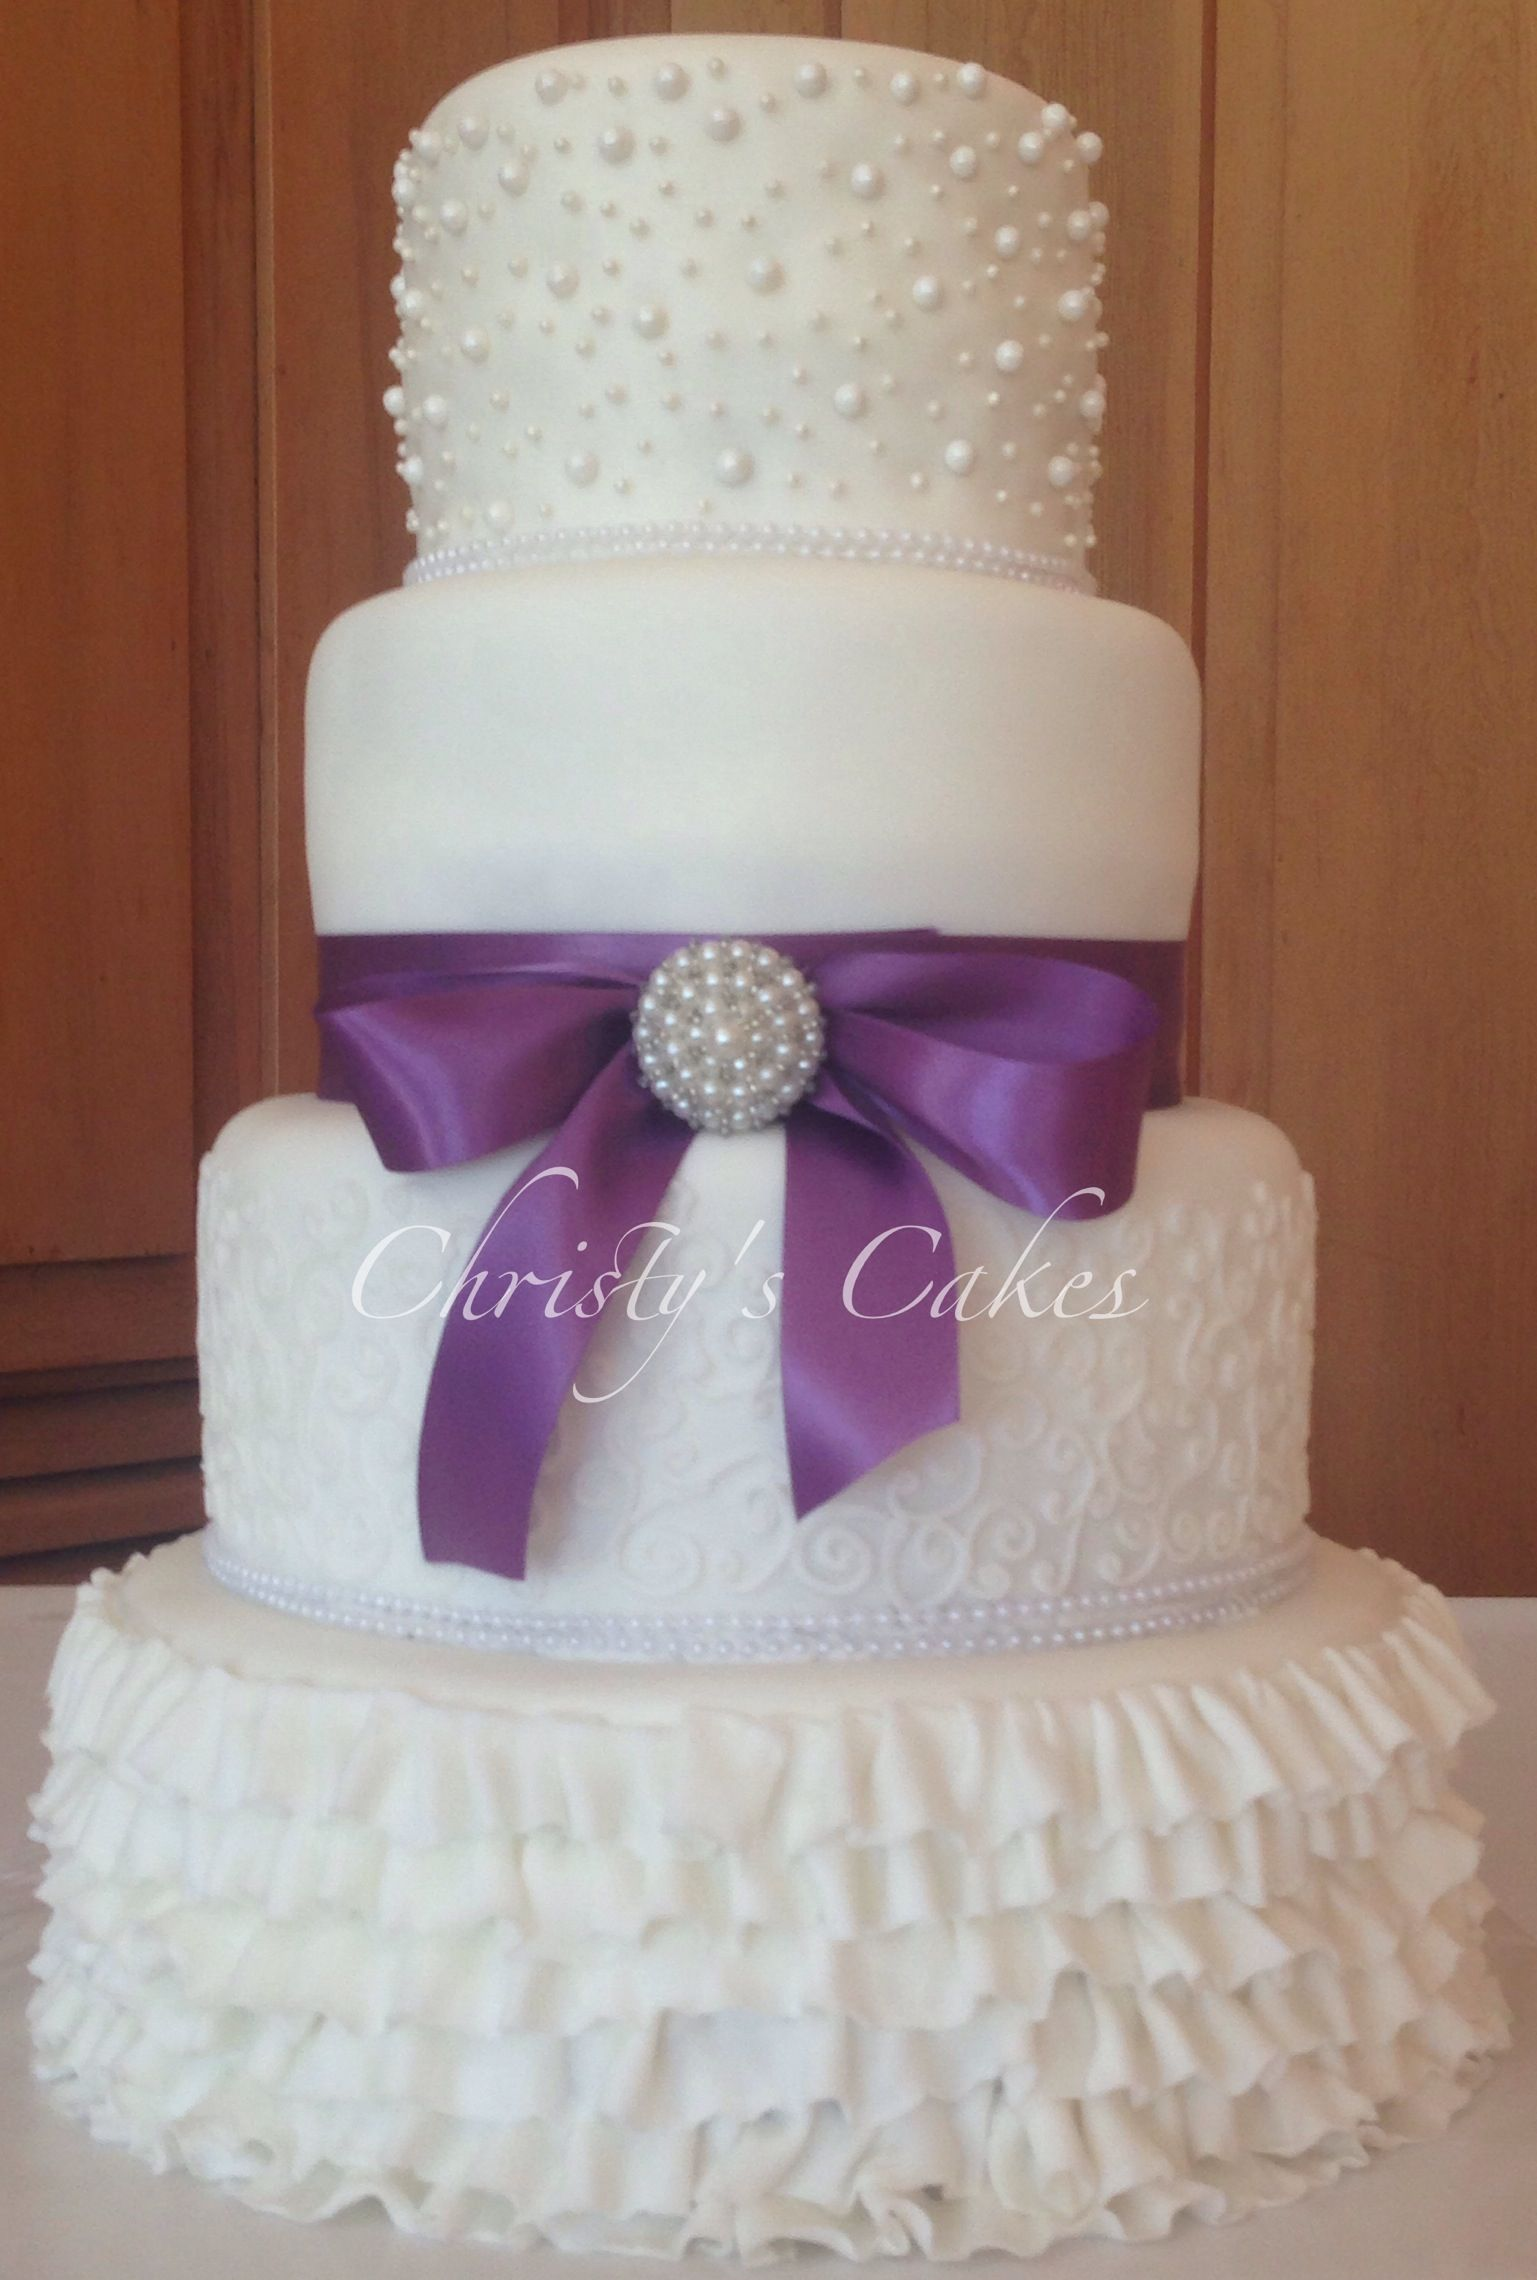 Another purple themed wedding cake wedding cakes pinterest